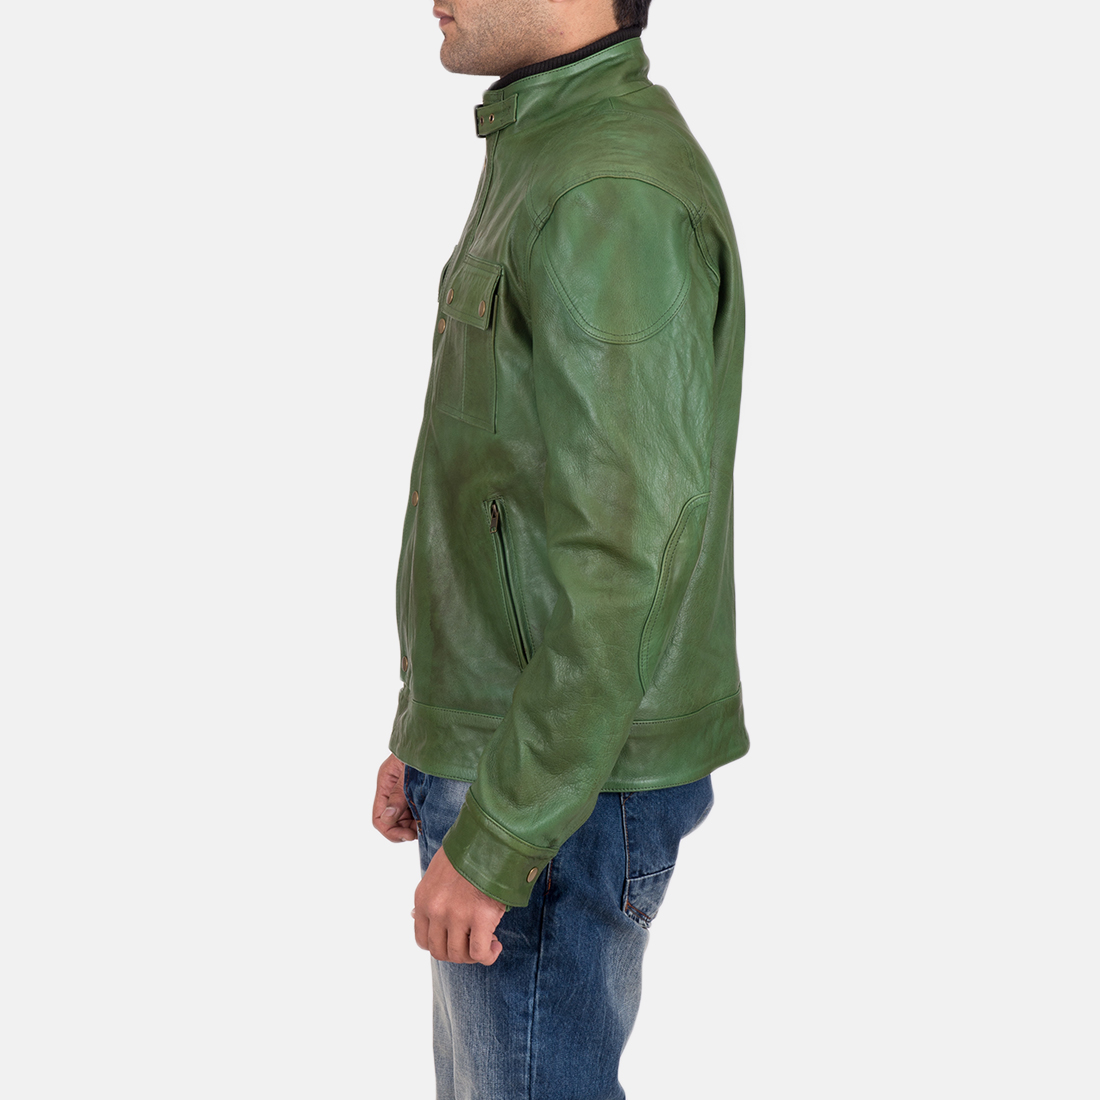 Men's Krypton Distressed Green Leather Jacket 6